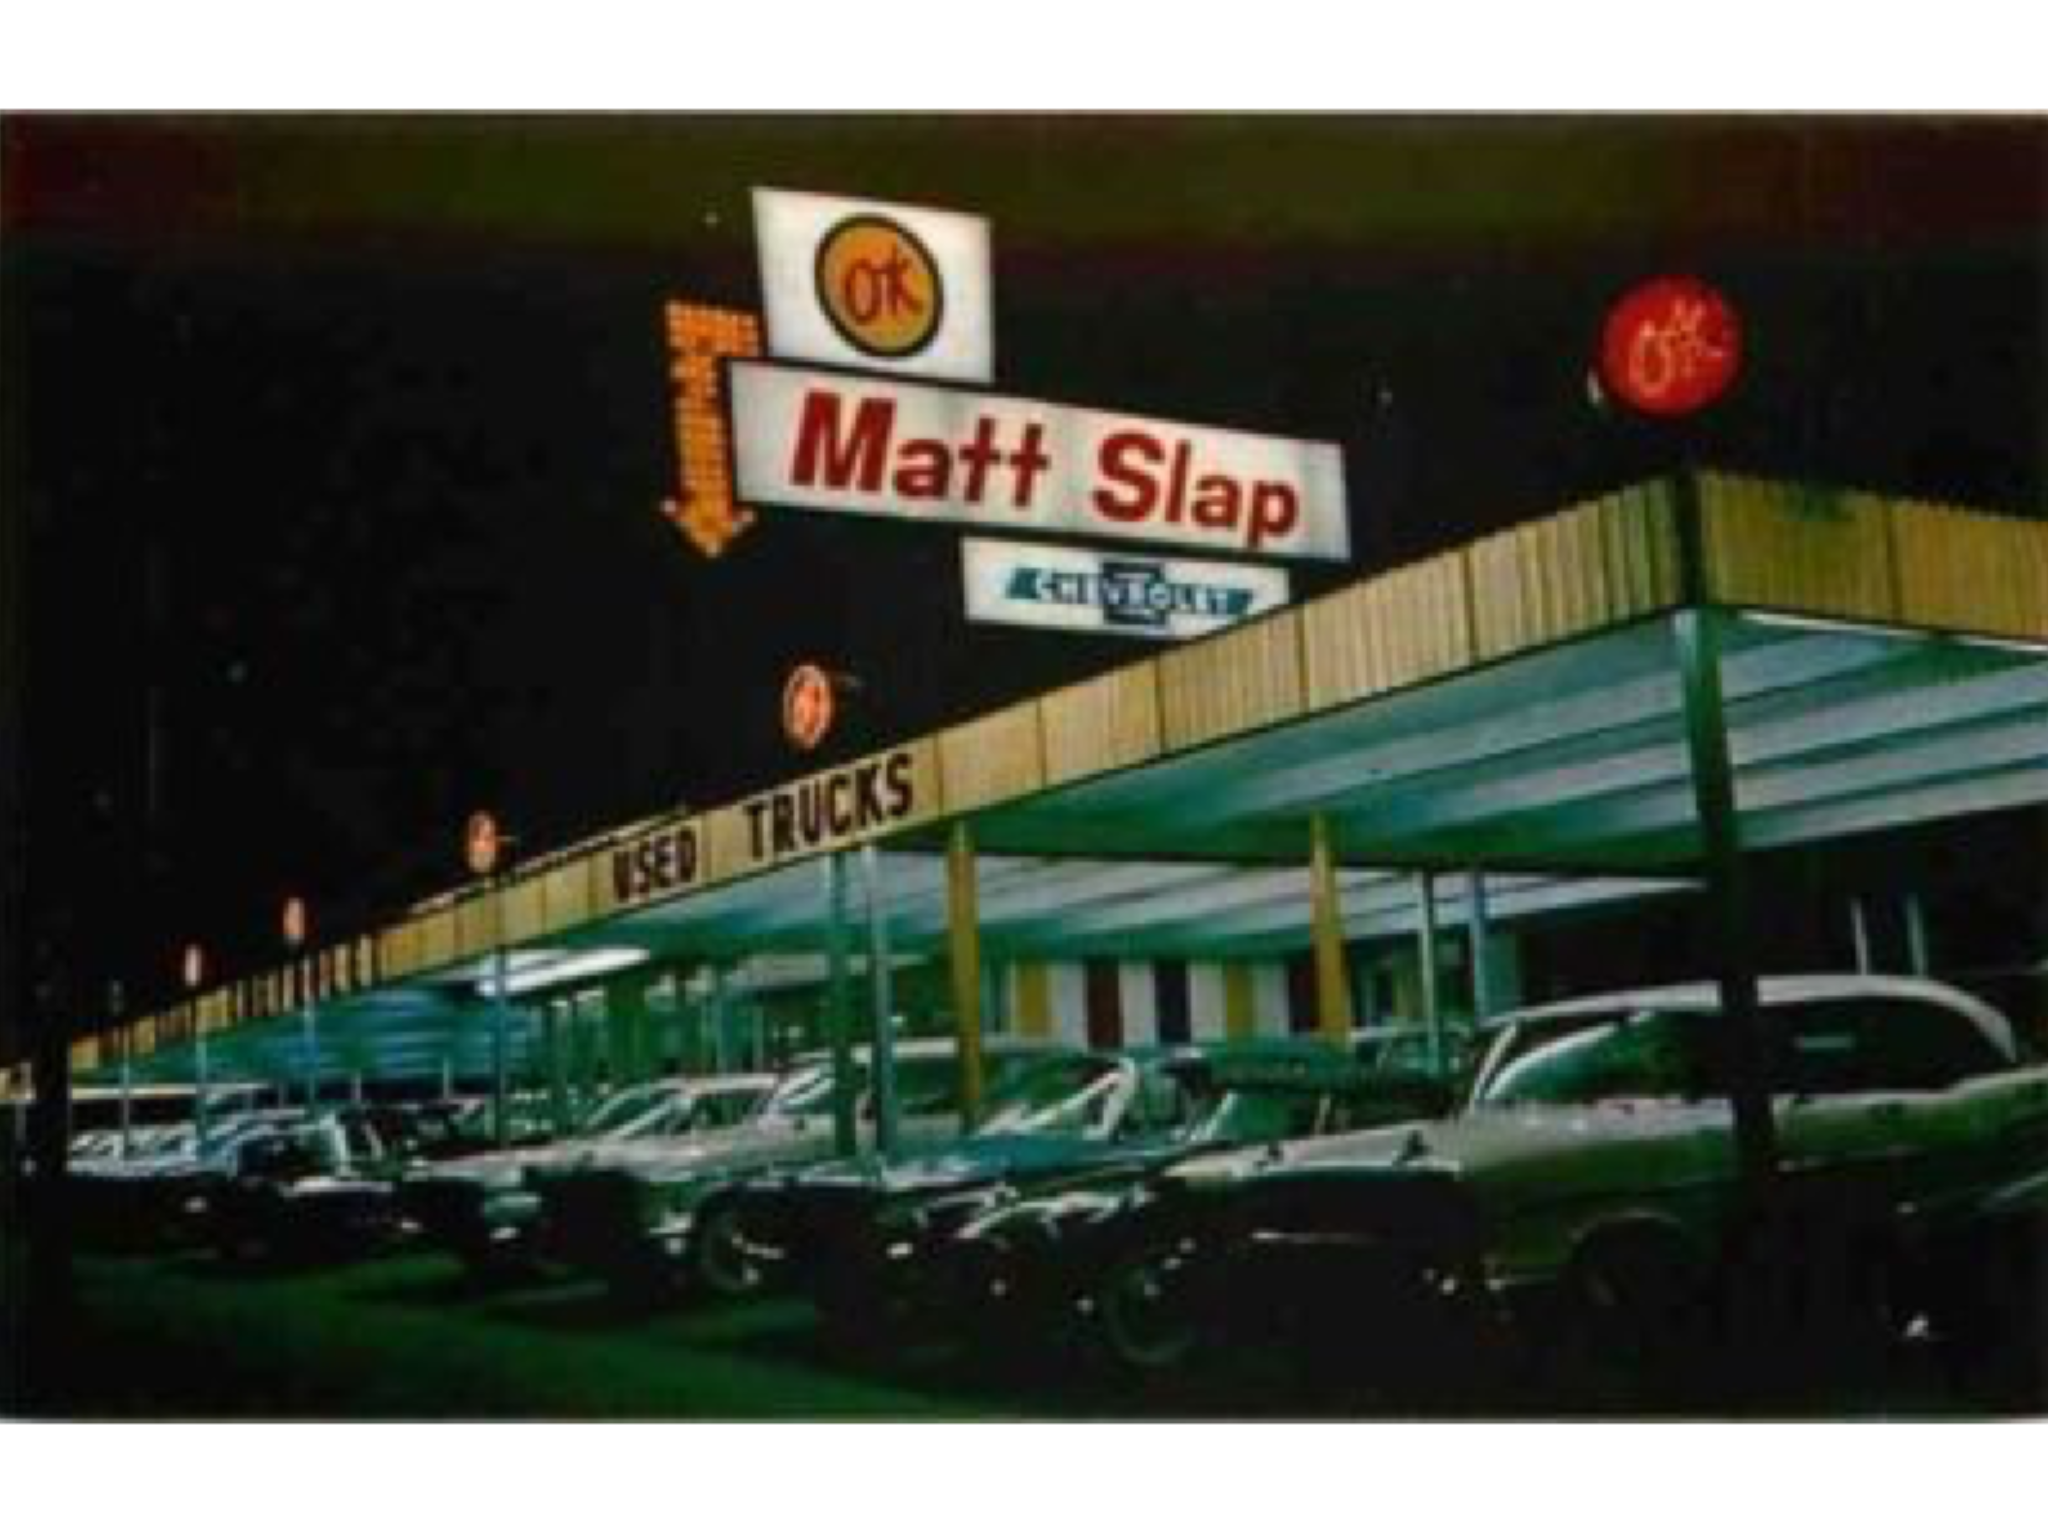 Matt Slap Chevrolet Dealership Philadelphia Pennsylvania